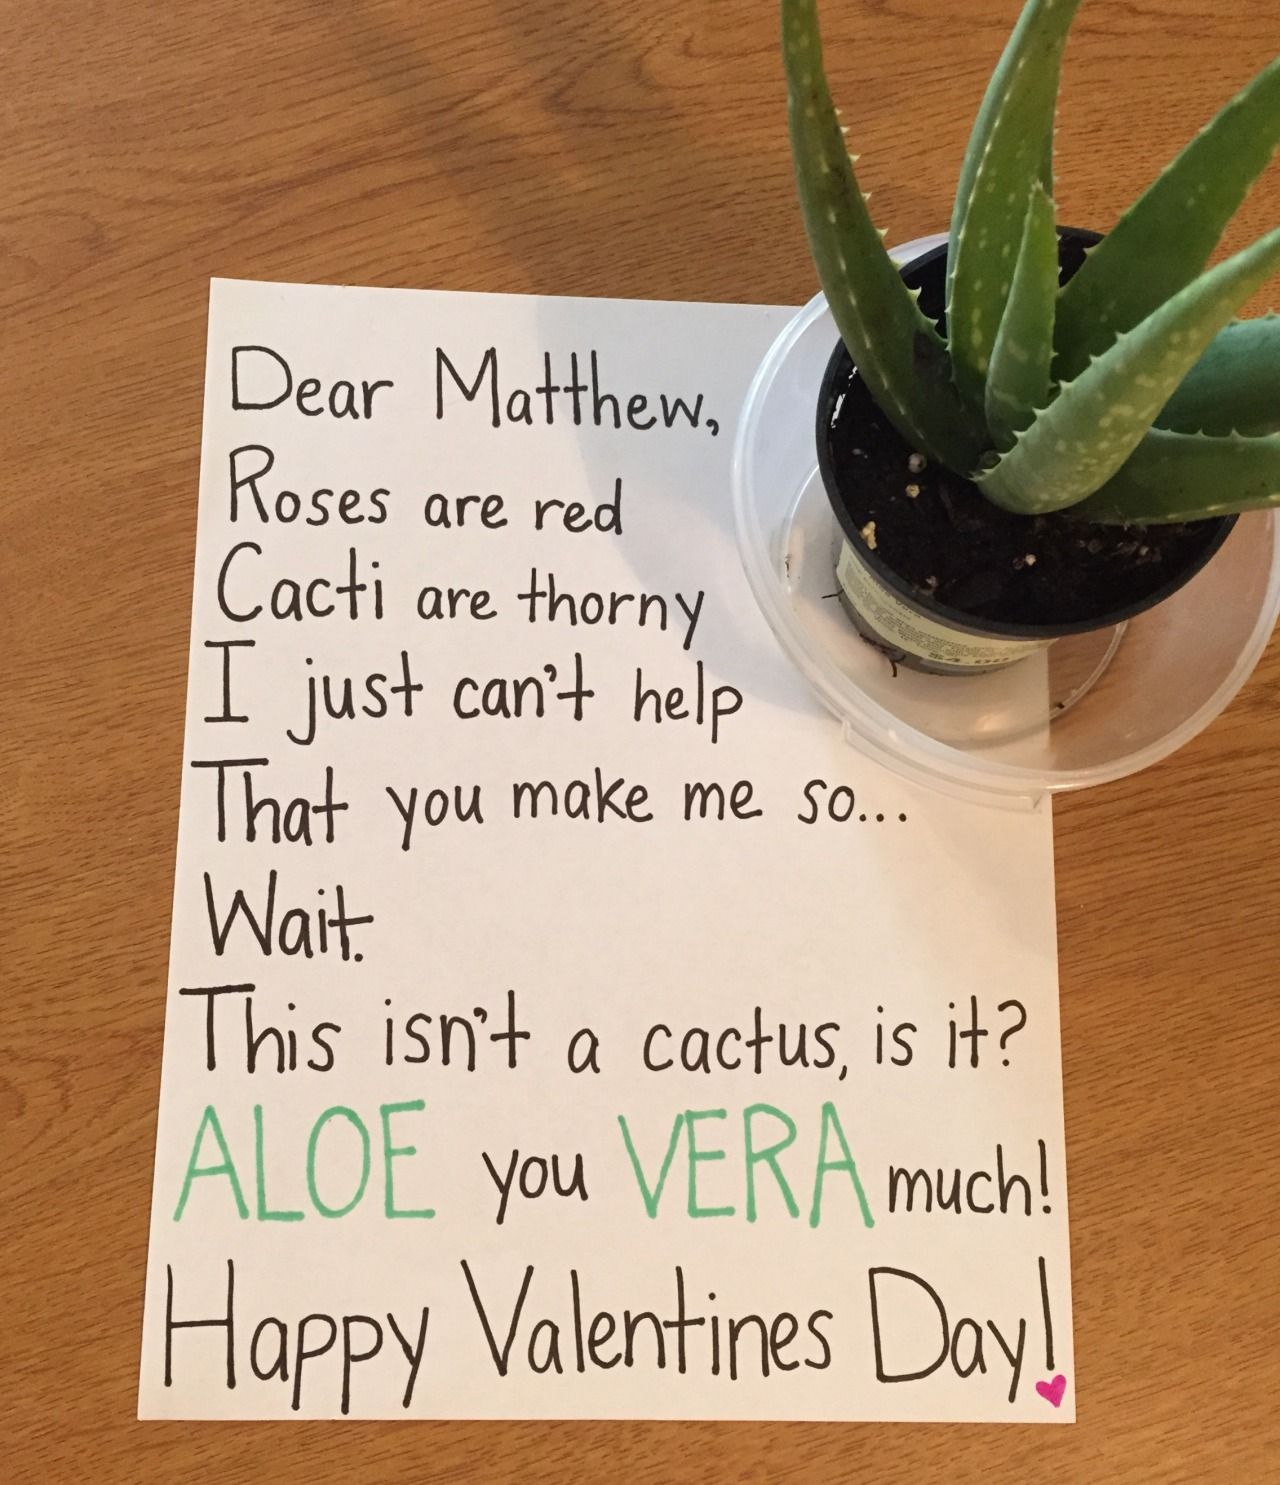 I M New To Having An So On Valentine S Day Am I Doing This Right Via Reddit Valentines Gifts For Him Diy Valentines Gifts Valentines Diy